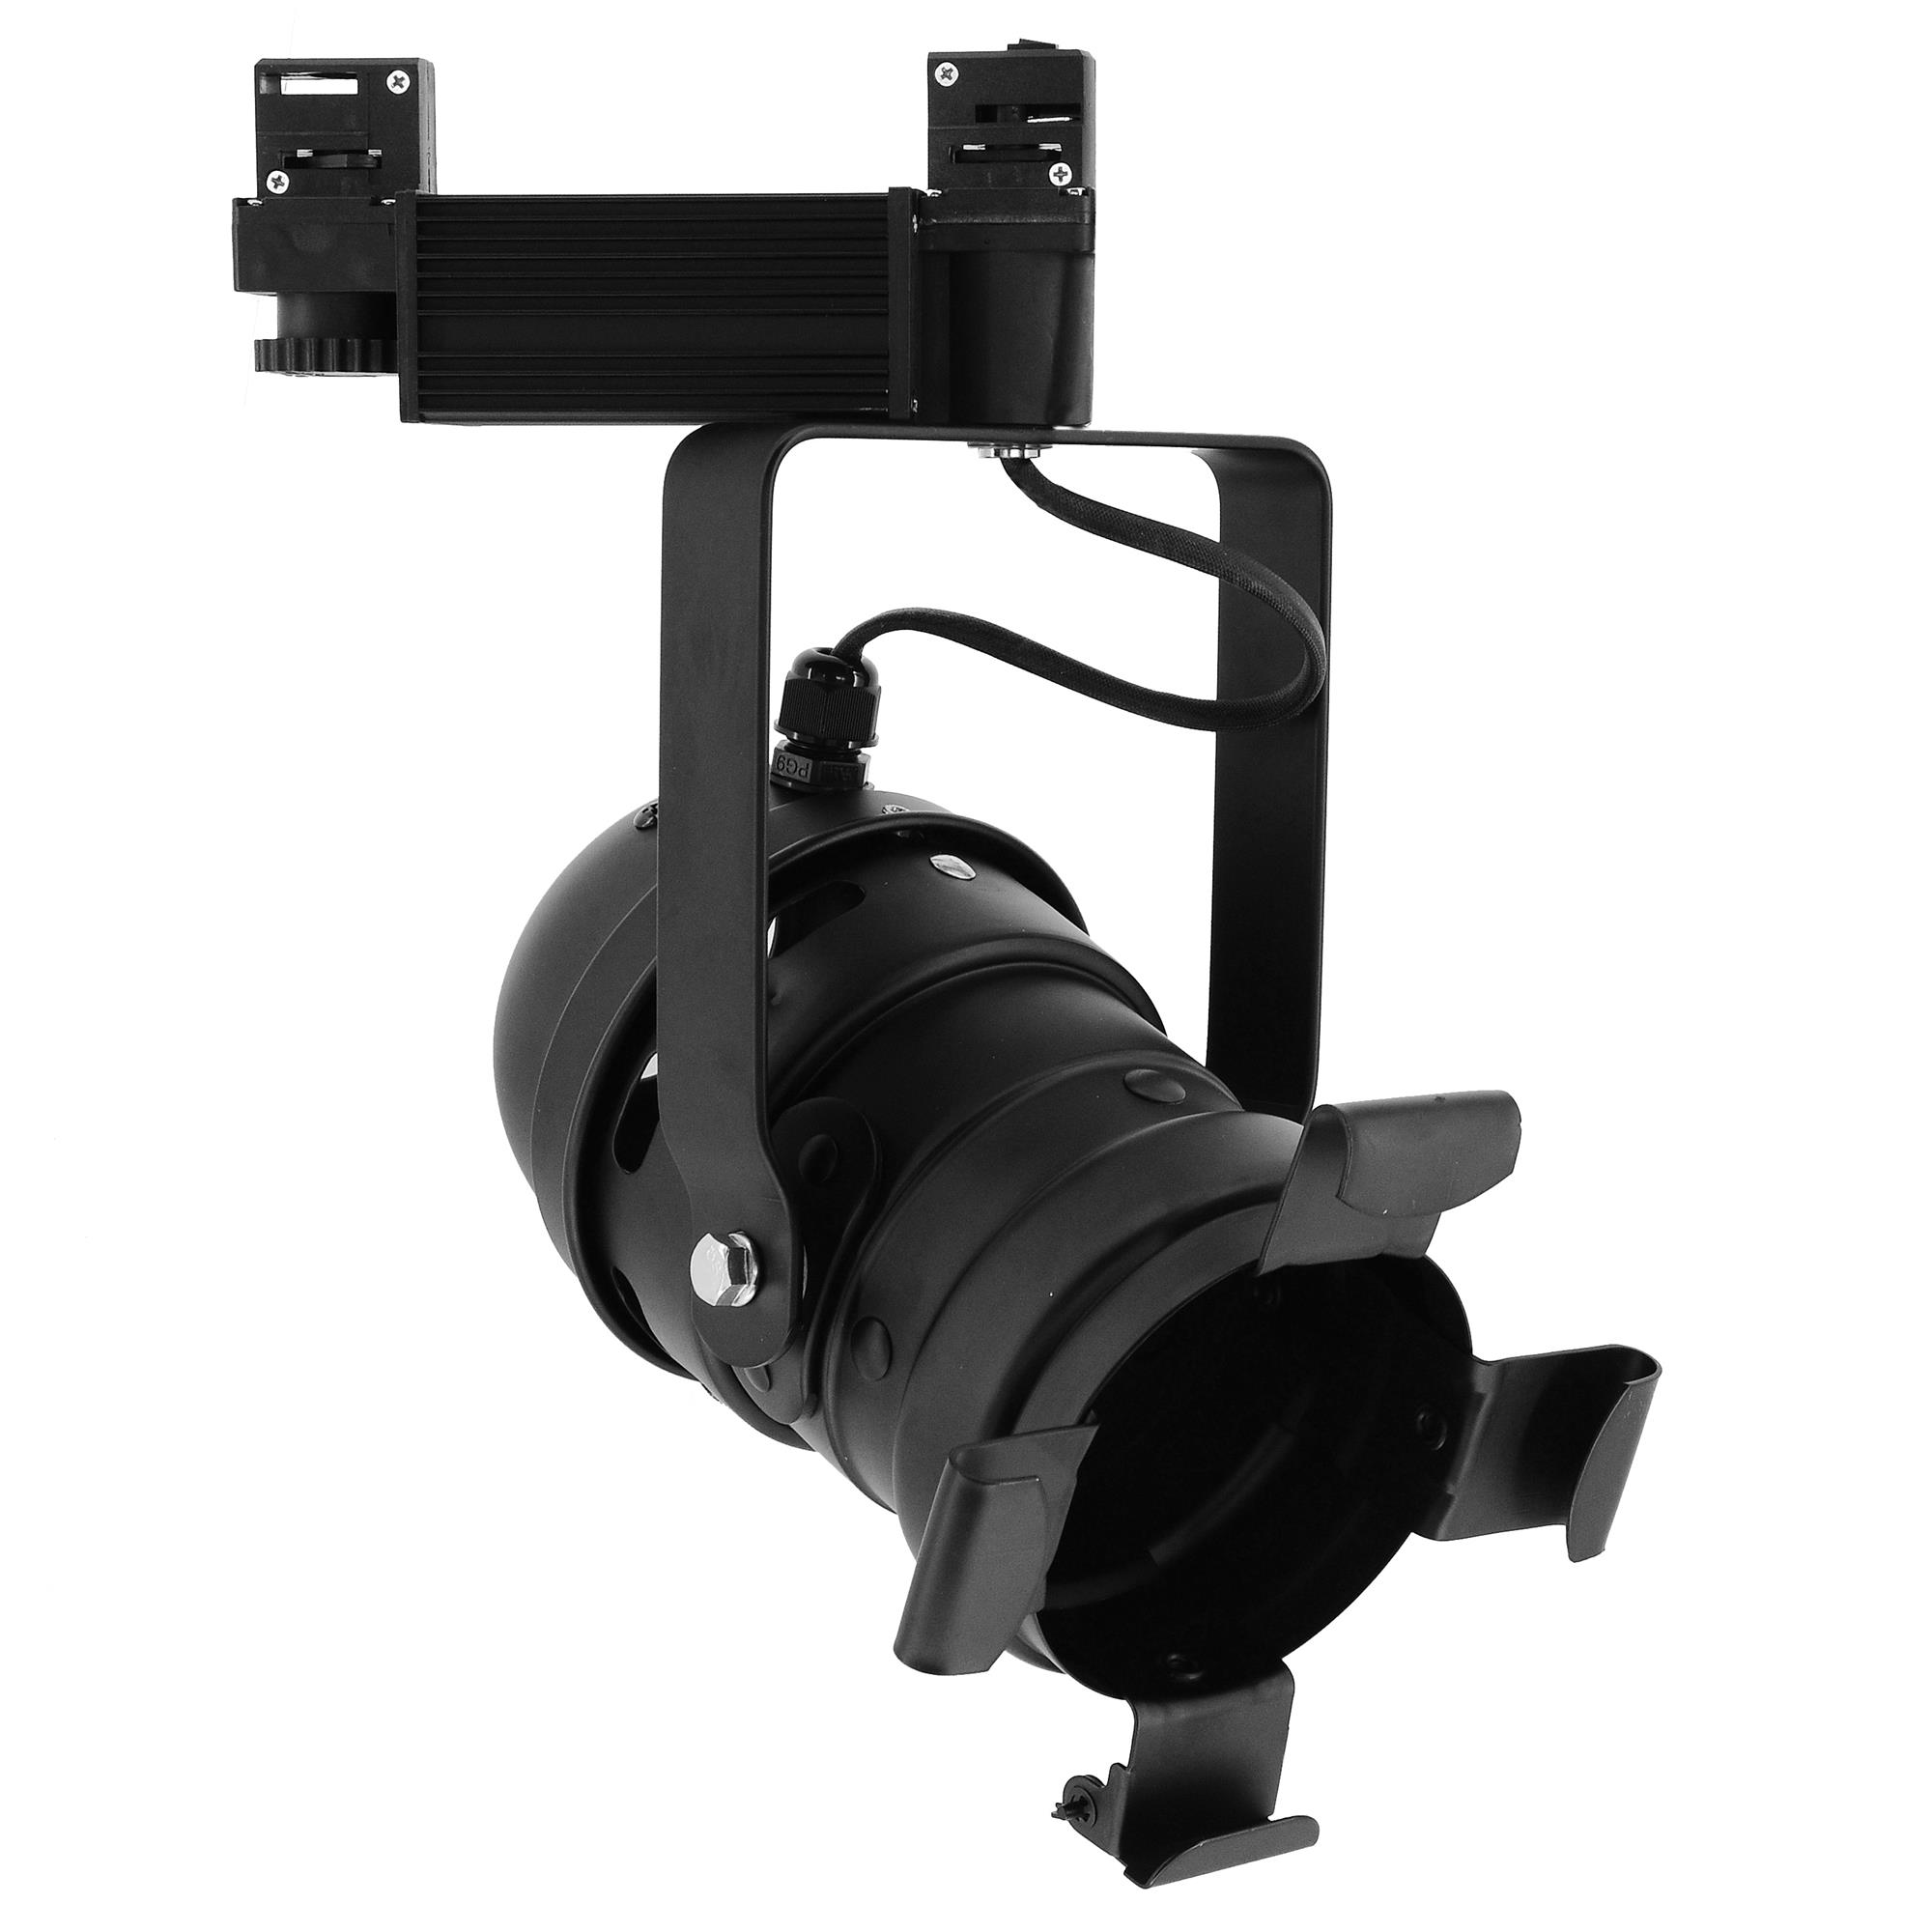 Black Track Lighting Uk: AR111 Theatre Track 240V 100W Black